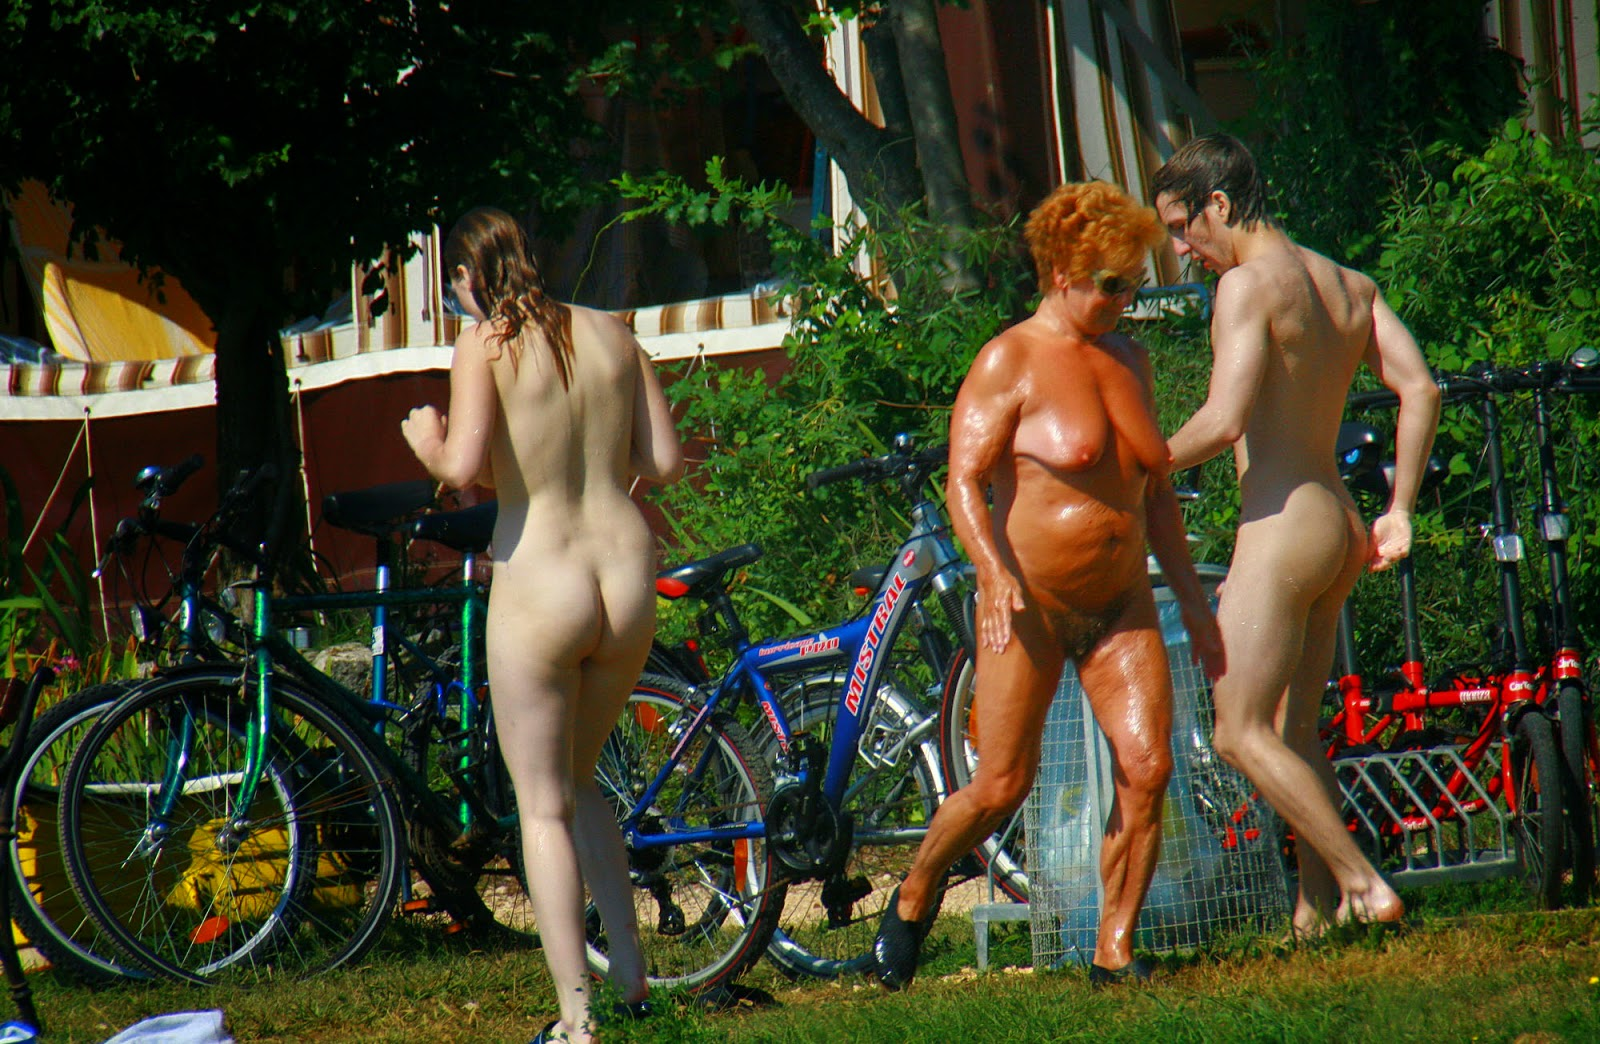 Have thought Croatia nudist family apologise, but